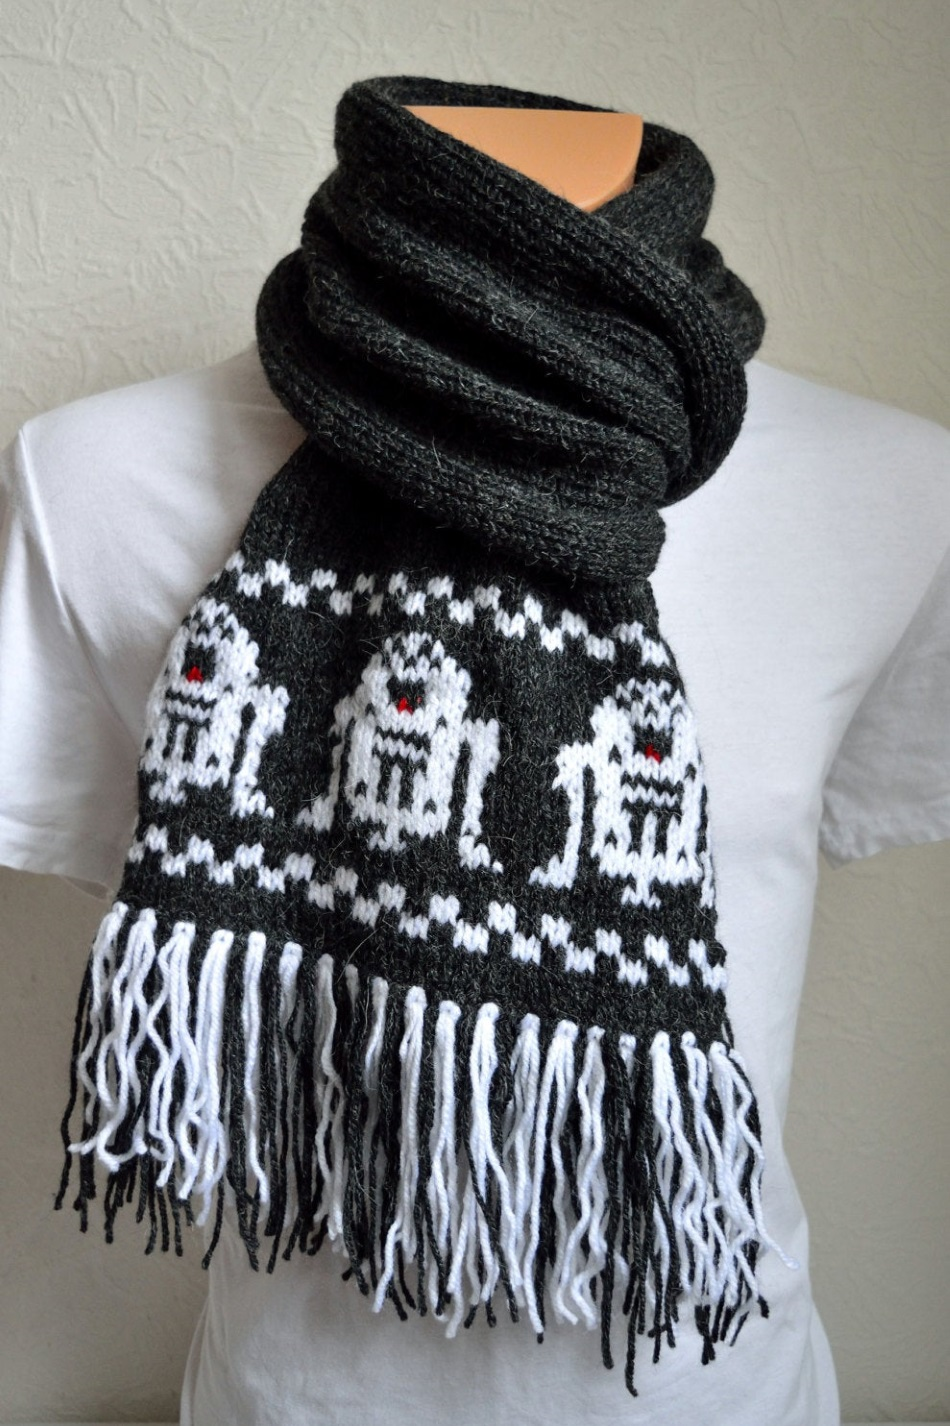 Star Wars Knitted Scarves by VidaKnitWorks on Etsy